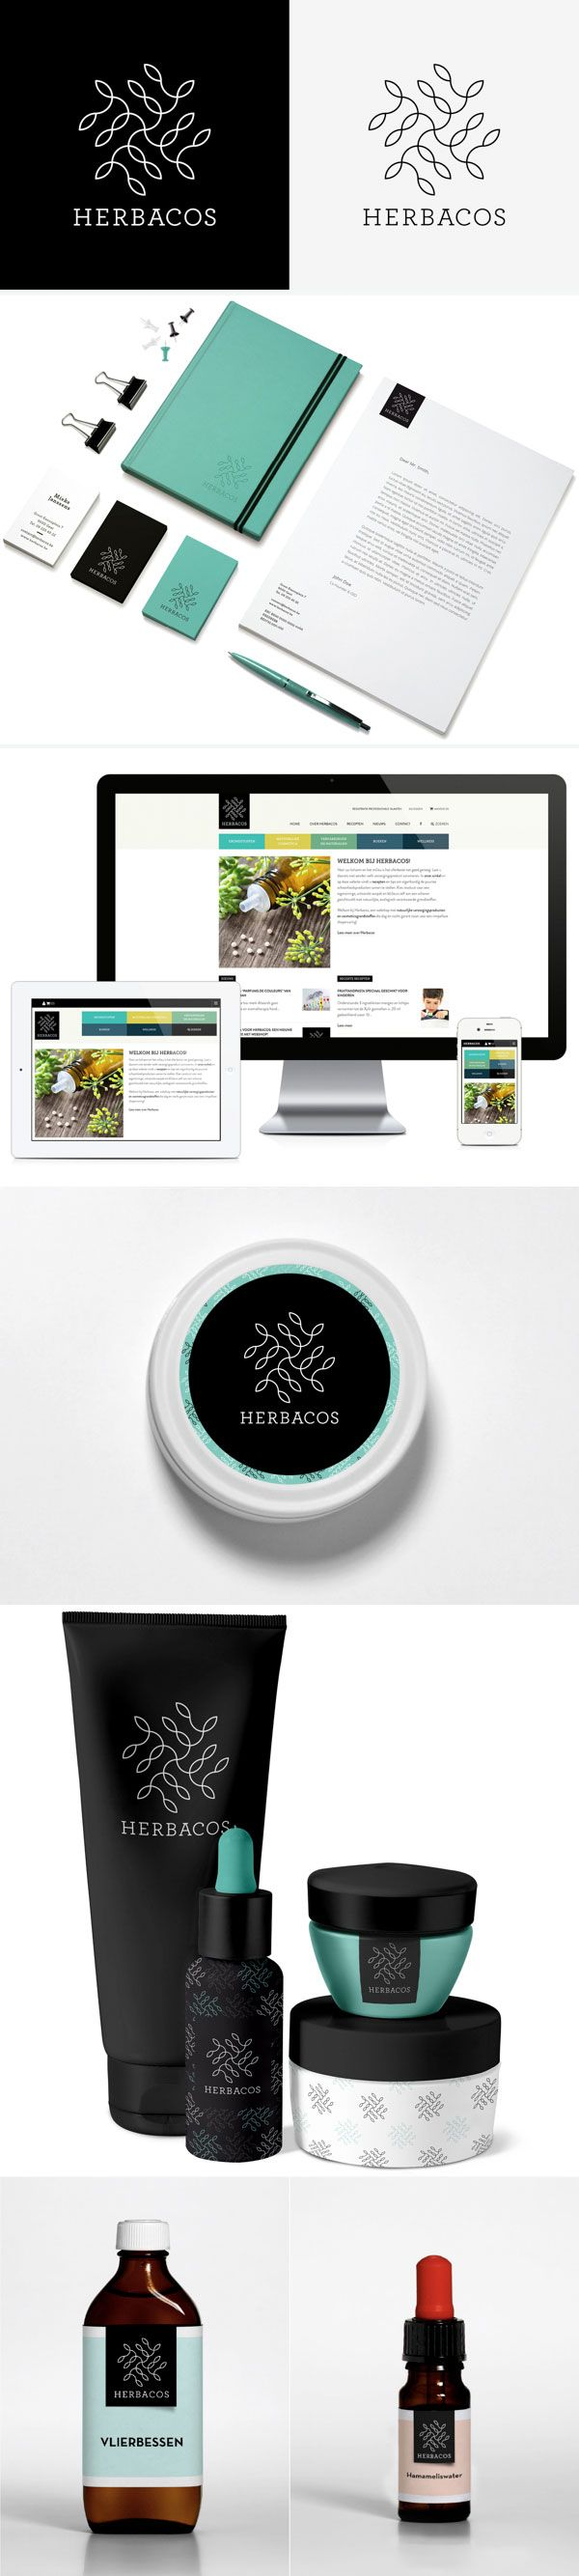 Herbacos #Identity #Packaging #Design